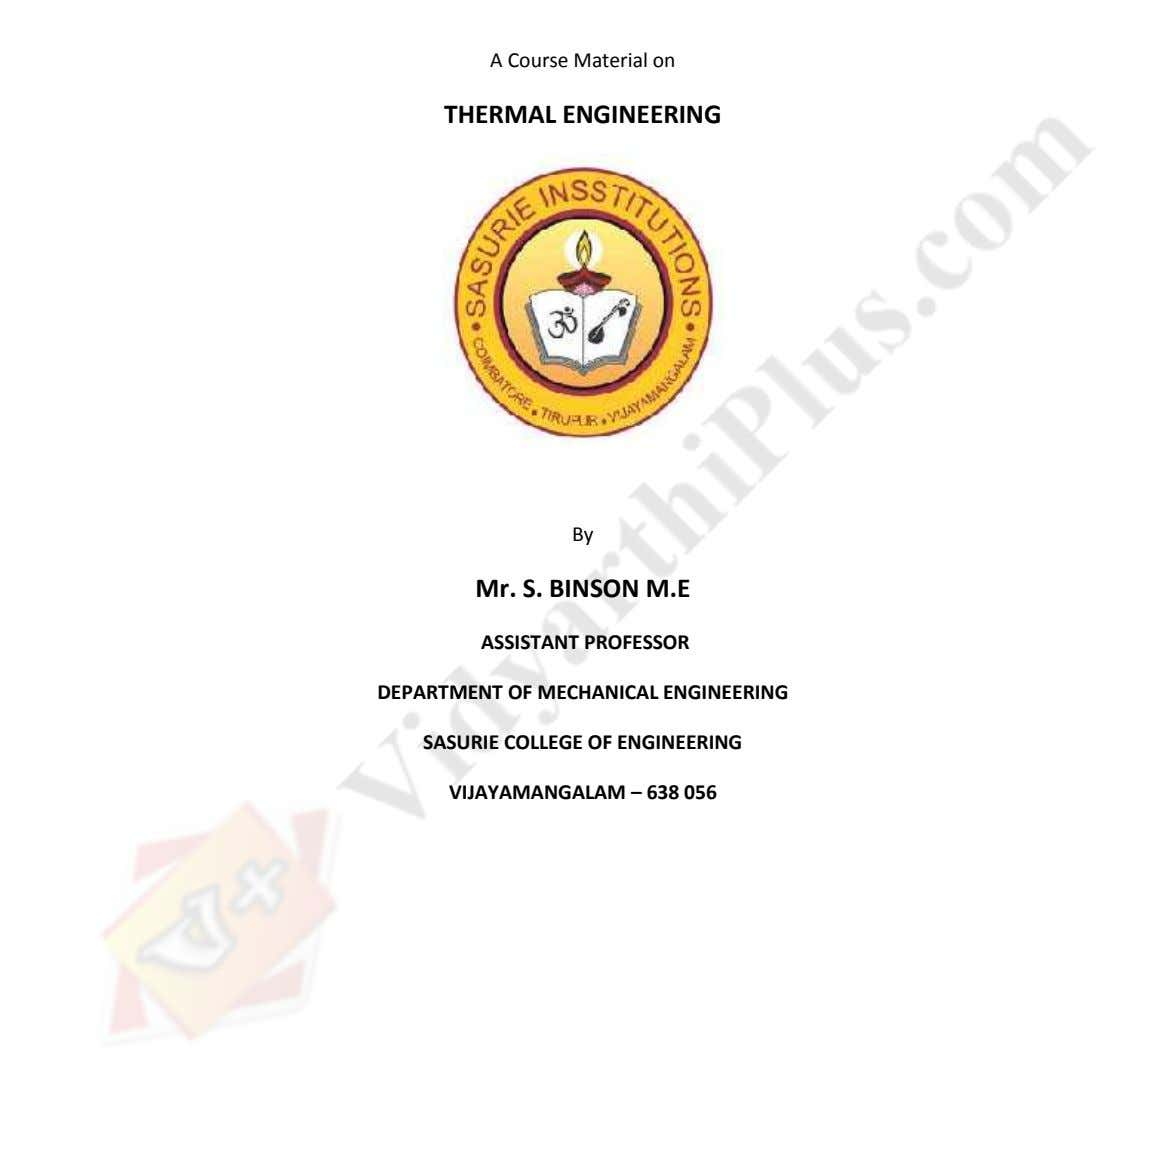 A Course Material on THERMAL ENGINEERING By Mr. S. BINSON M.E ASSISTANT PROFESSOR DEPARTMENT OF